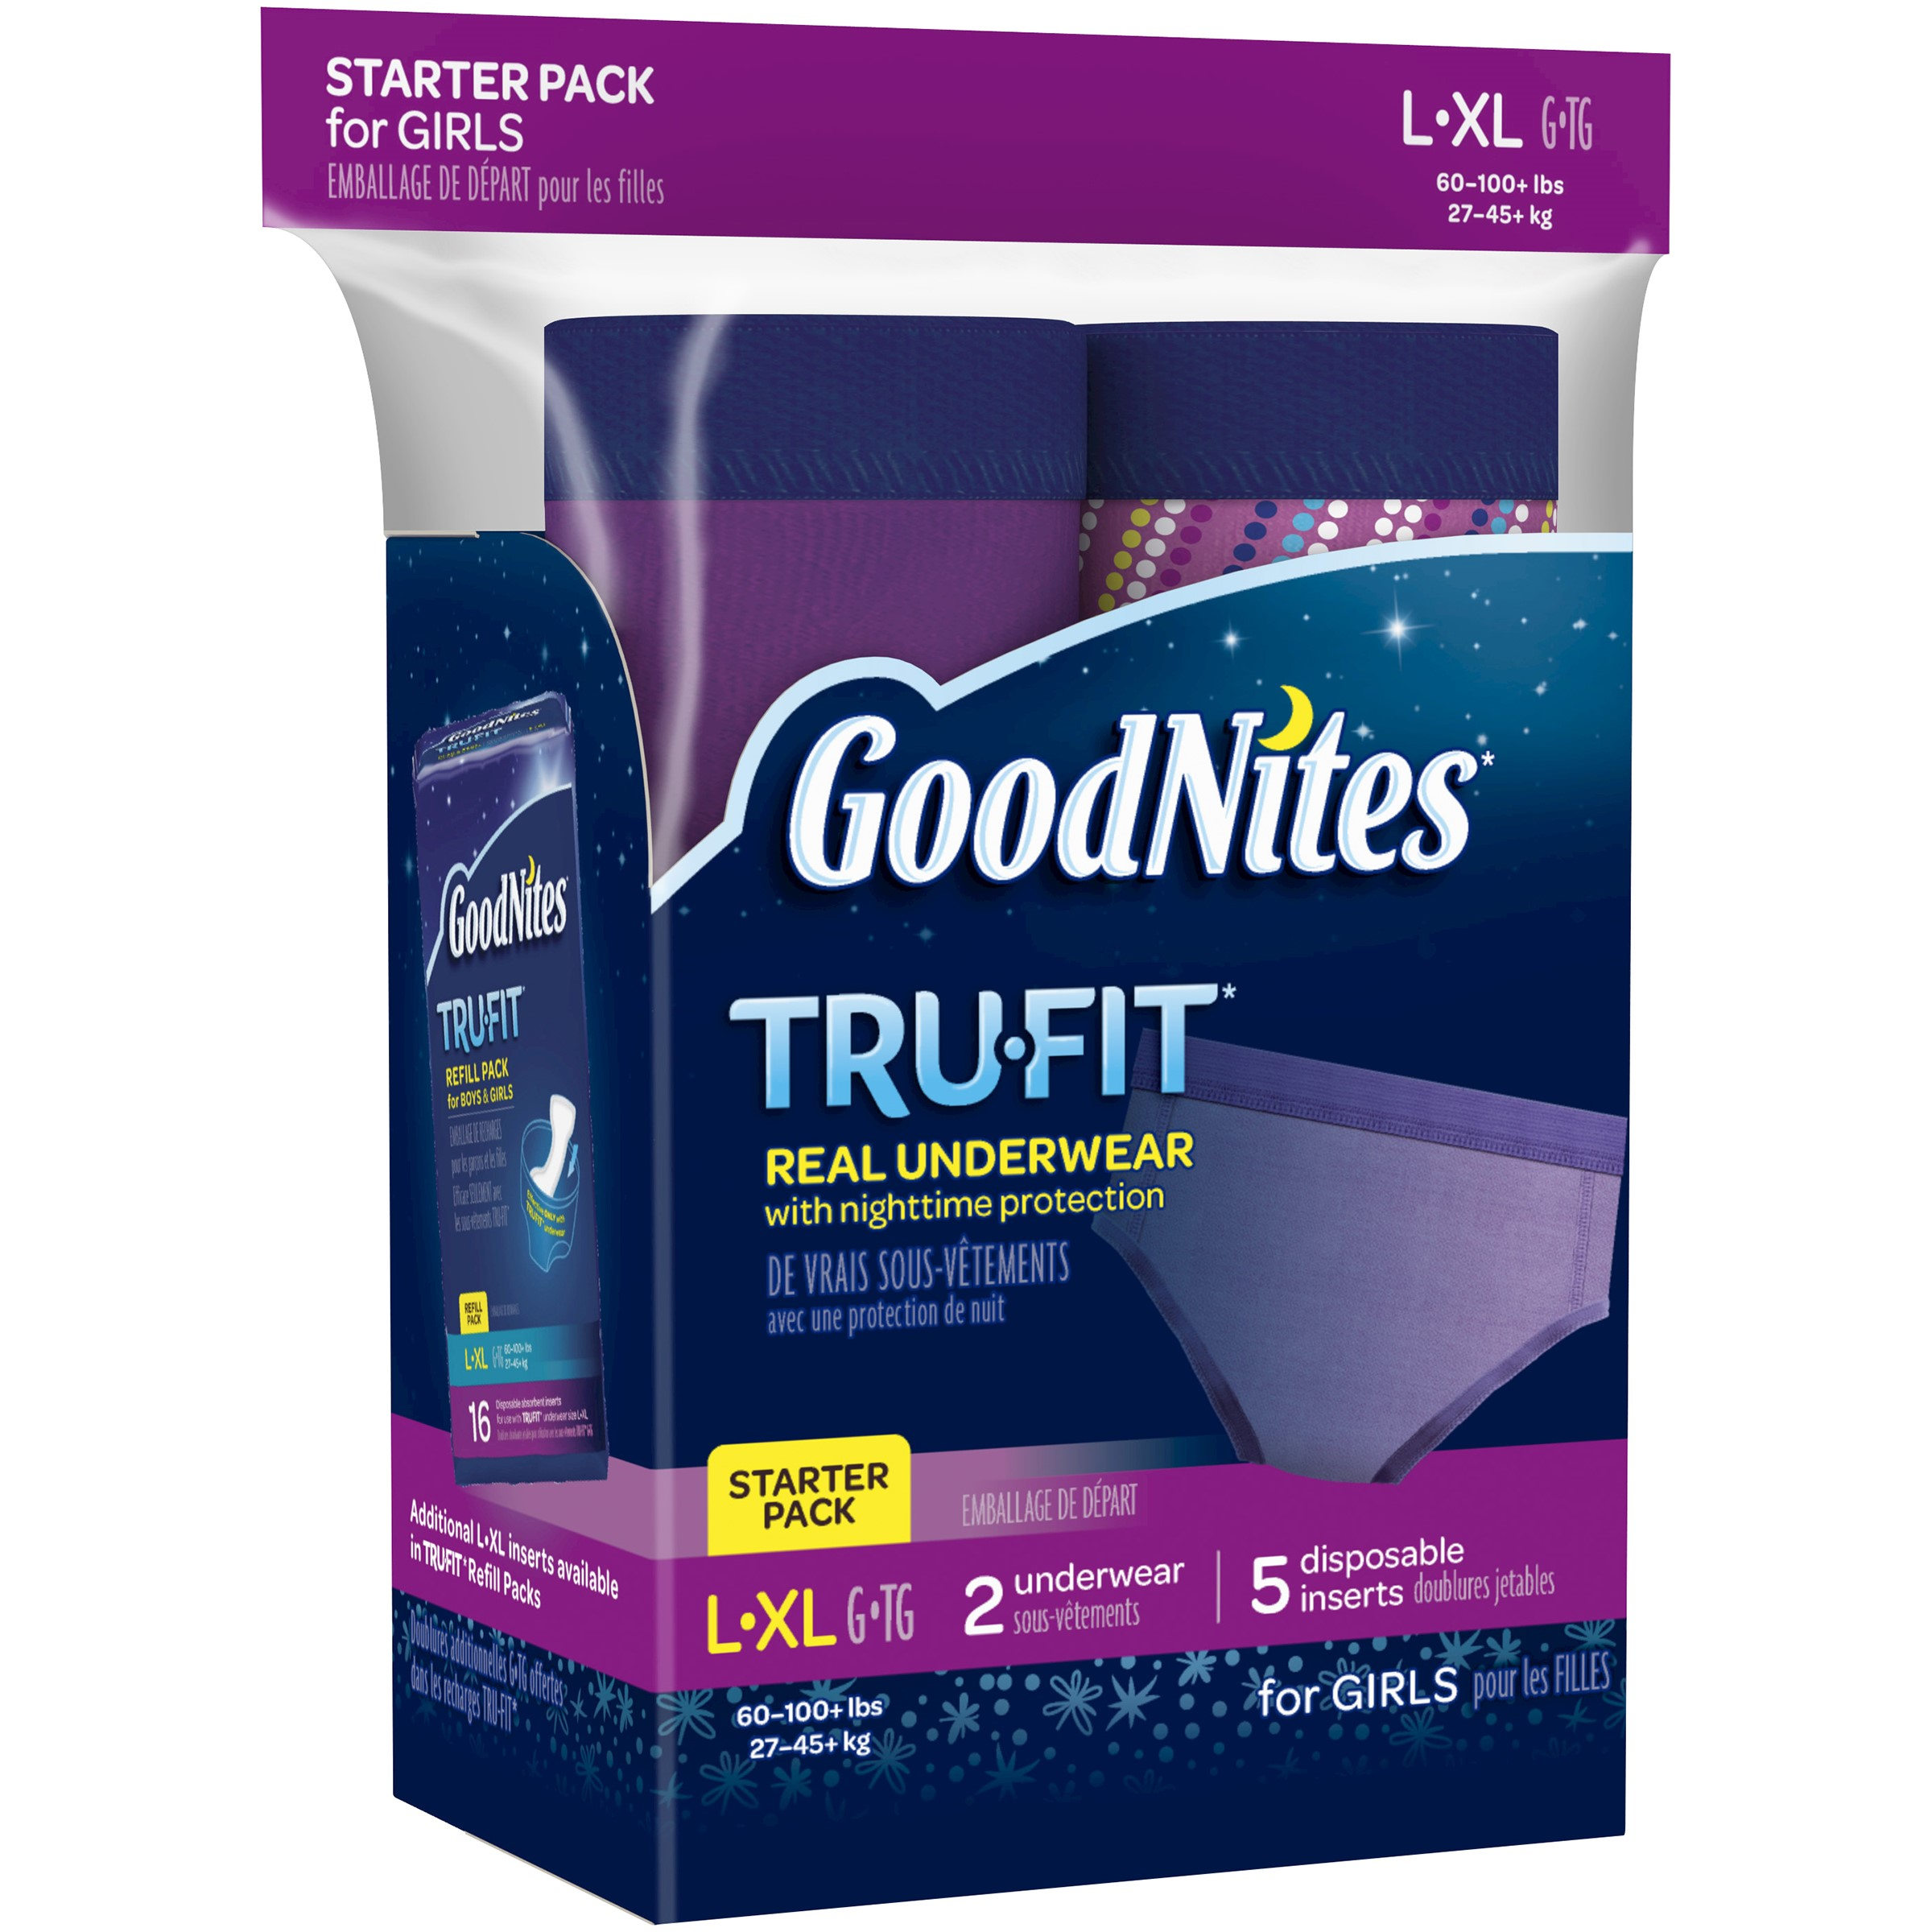 GoodNites Tru-Fit Bedwetting Underwear with Nighttime Protection Starter Pack for Girls, S/M, 7ct